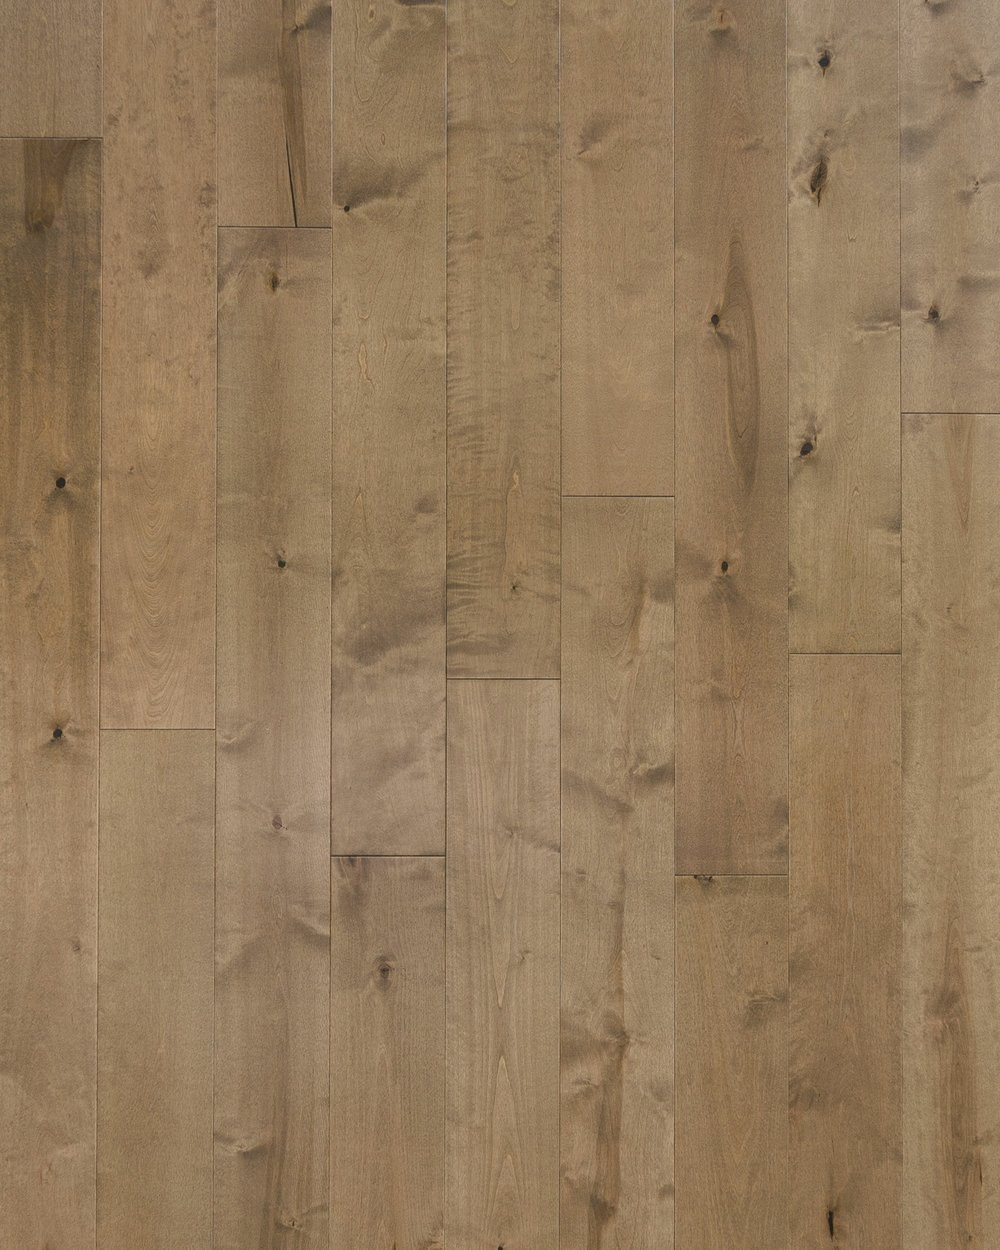 BSBI-07 | NANTUCKET MIST | BIRCH    –Surface: Smooth, natural crevices mineral streaks